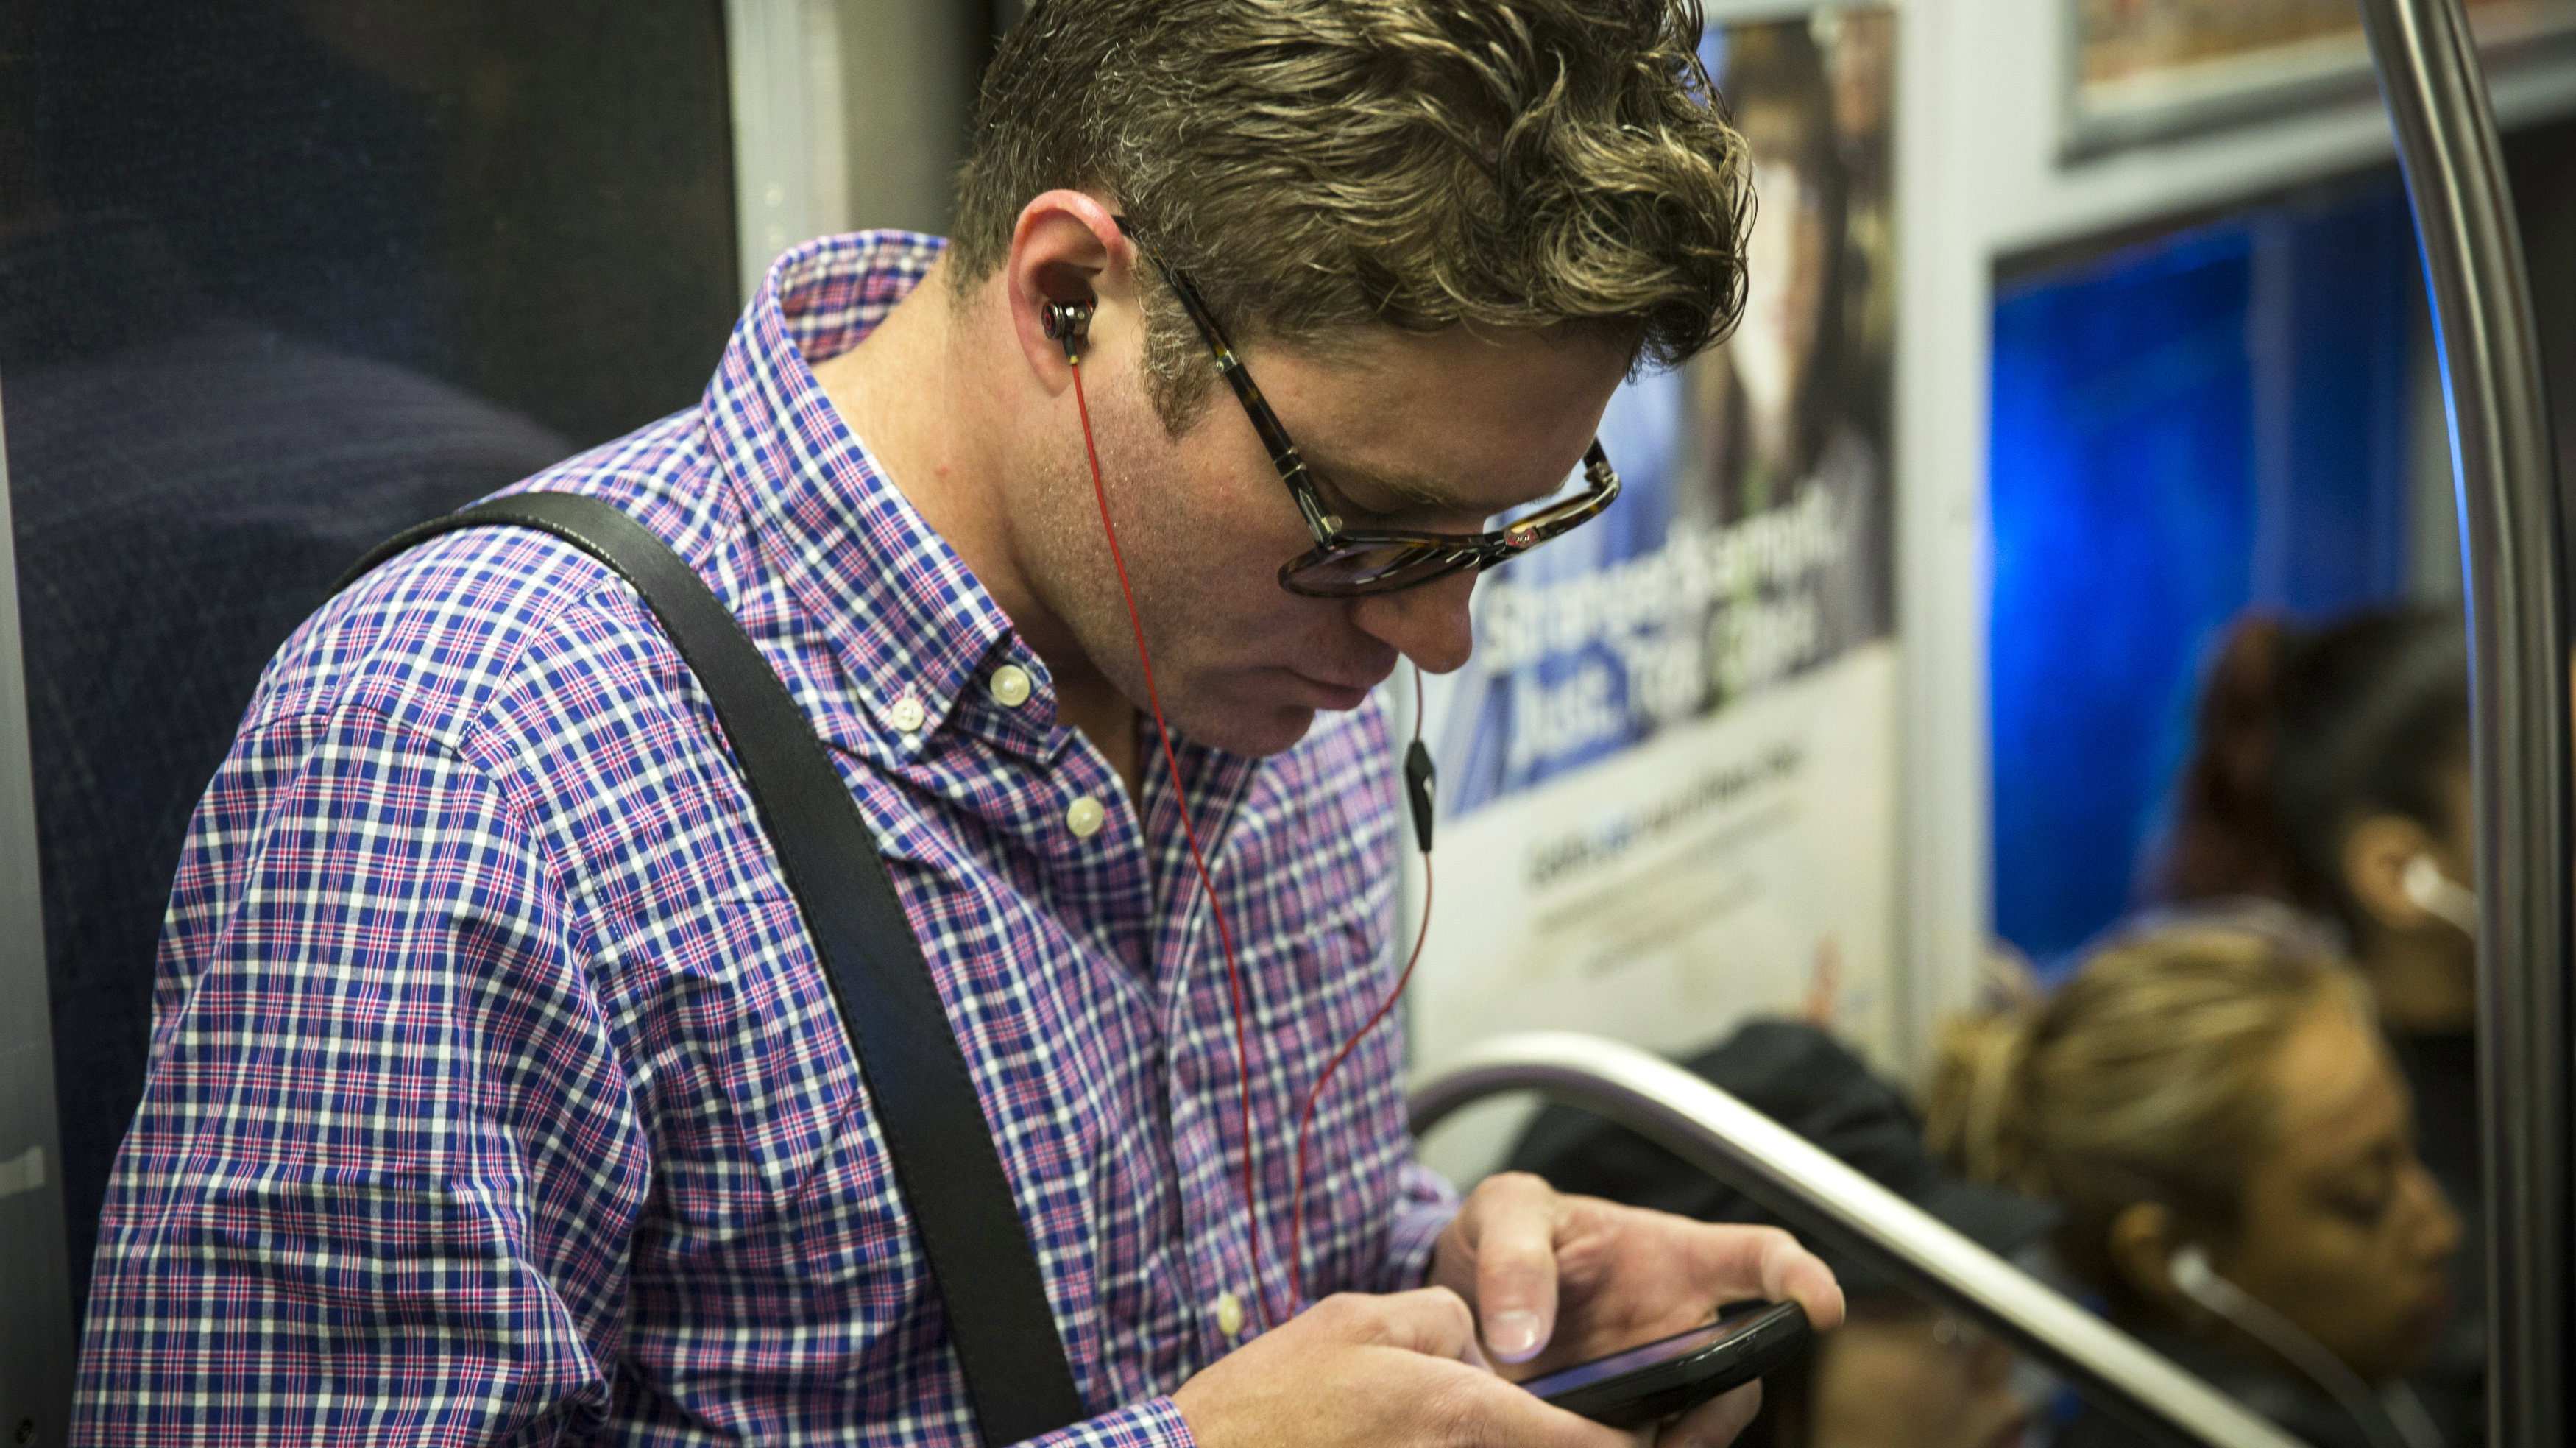 A commuter listens to Beats brand headphones while riding the subway in New York.